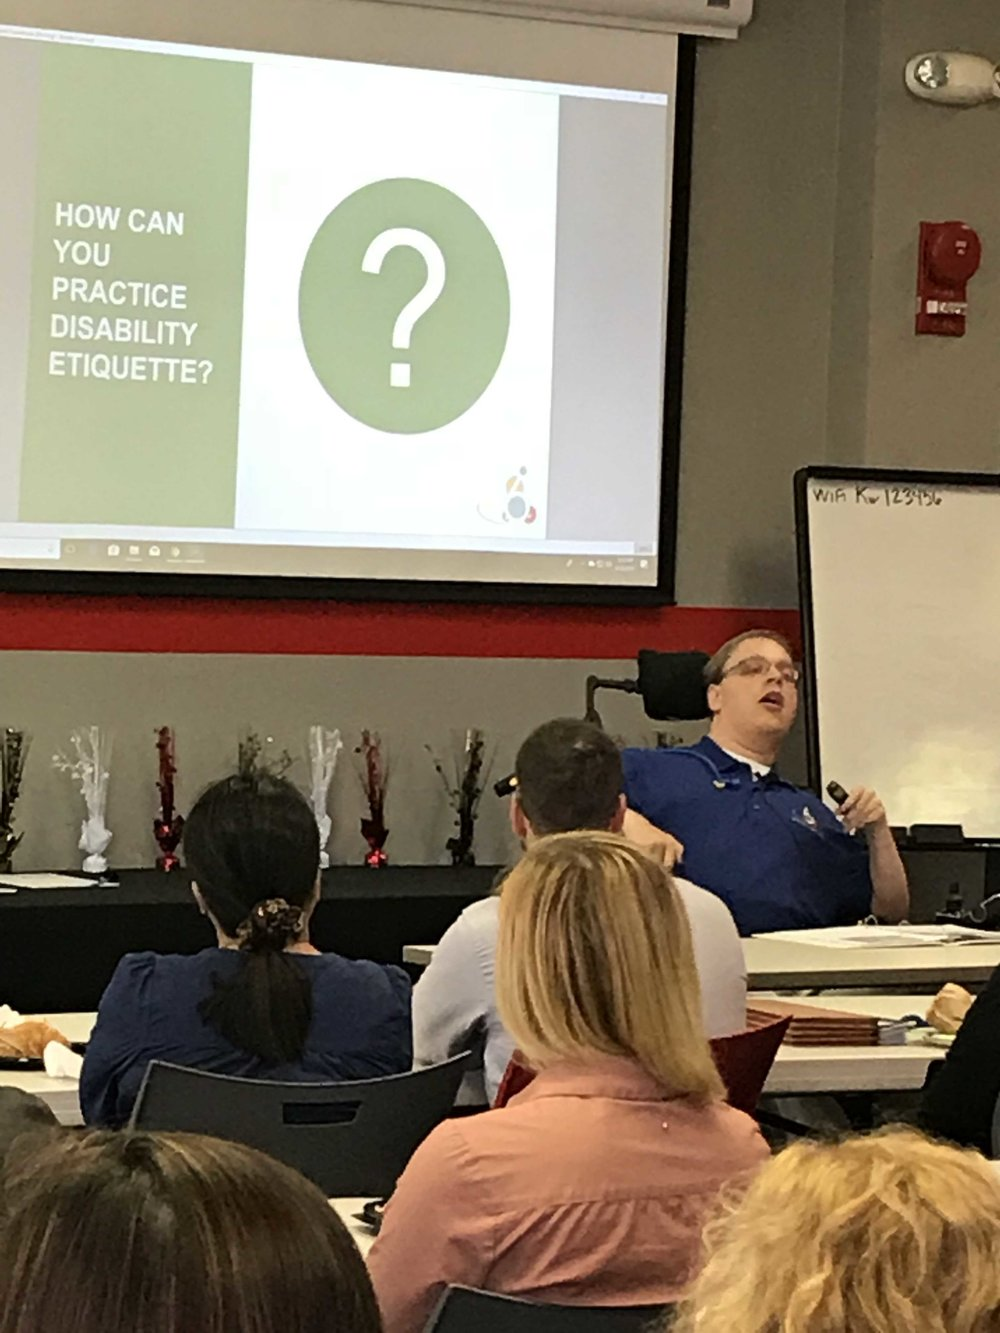 PHOTO: Matthew sitting In front of a screen presenting his disability etiquette training at New Editions Consulting Inc.